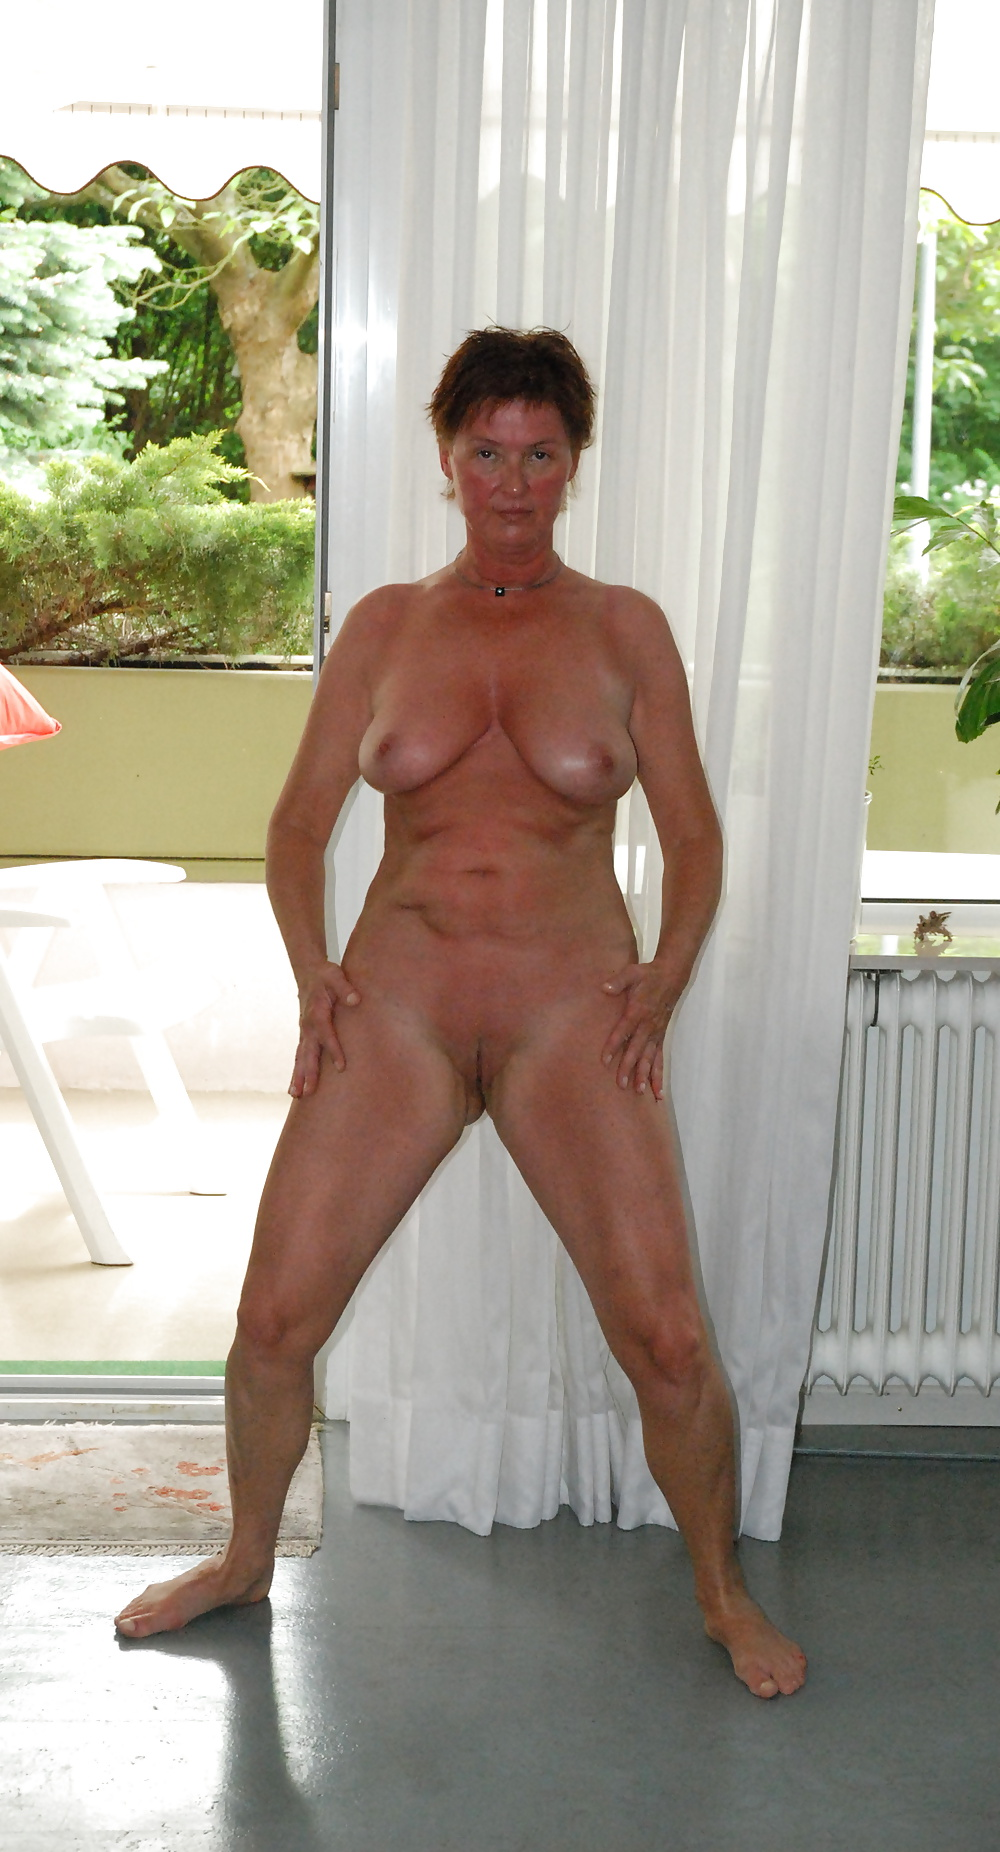 Full Frontal Nudity Hot Amateur Milfs - 44 Pics  Xhamster-9812